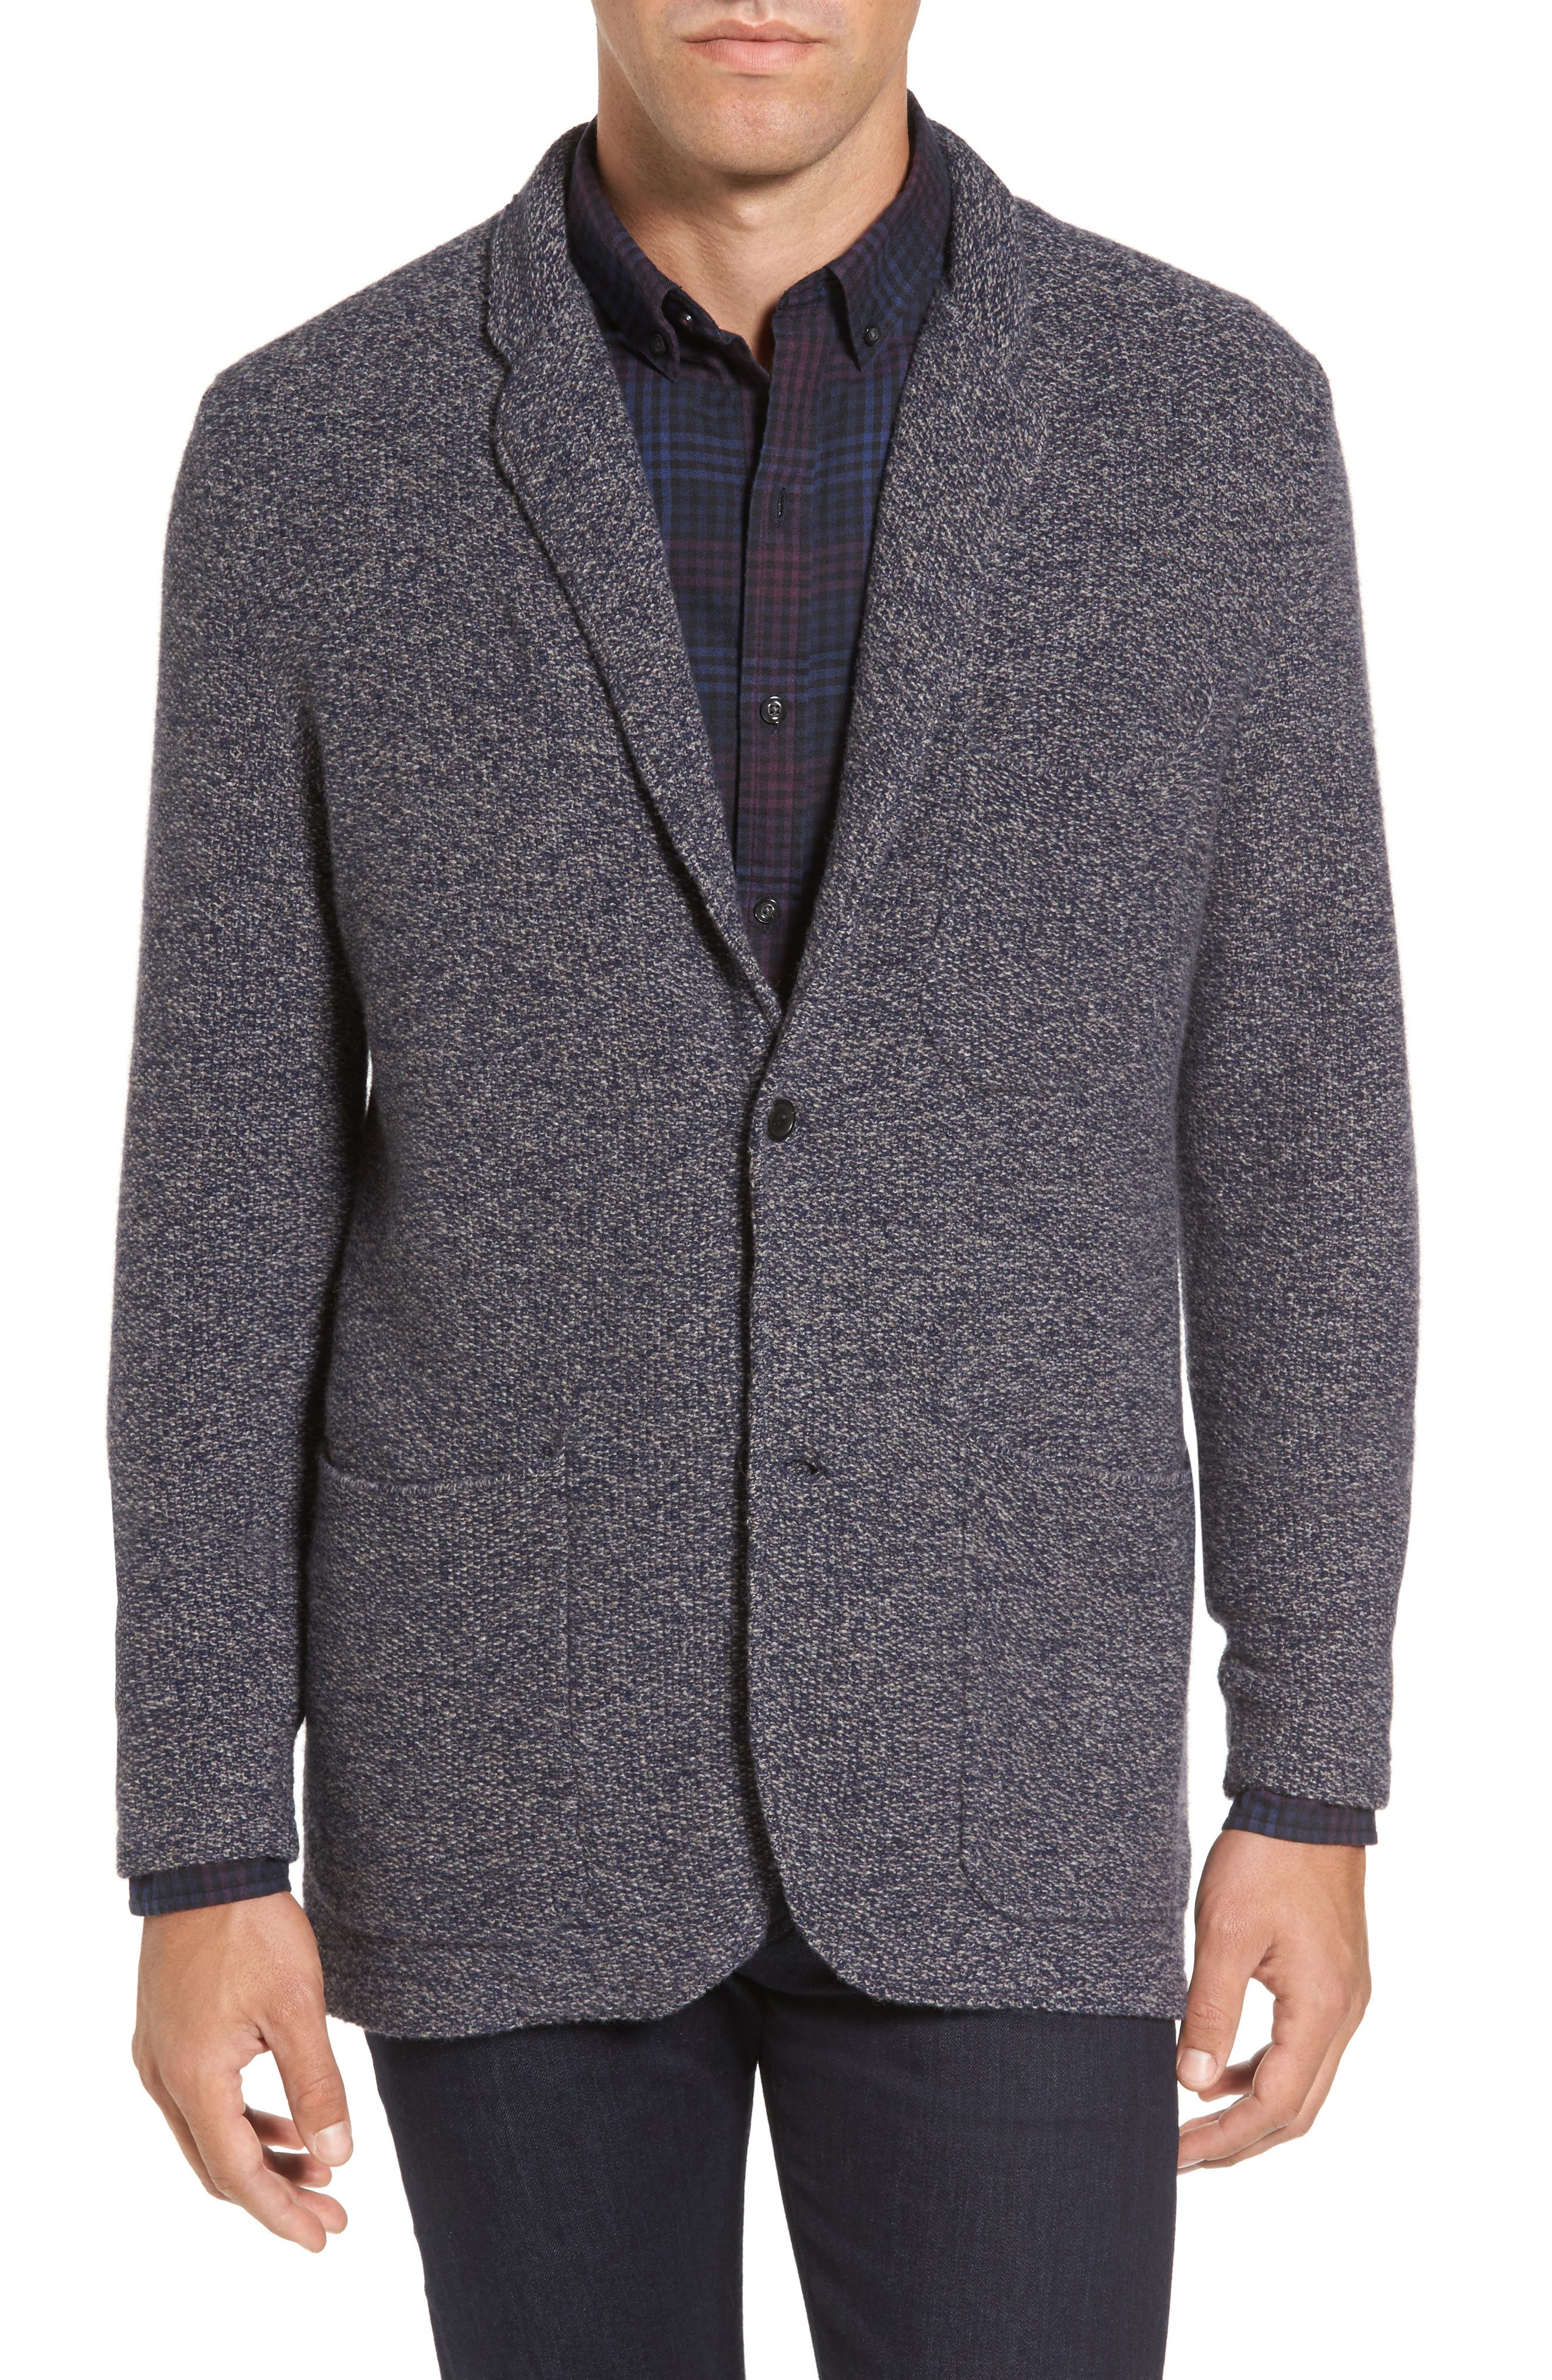 Deconstructed Merino & Yak Wool Sweater Jacket,                             Main thumbnail 1, color,                             Blue Ink